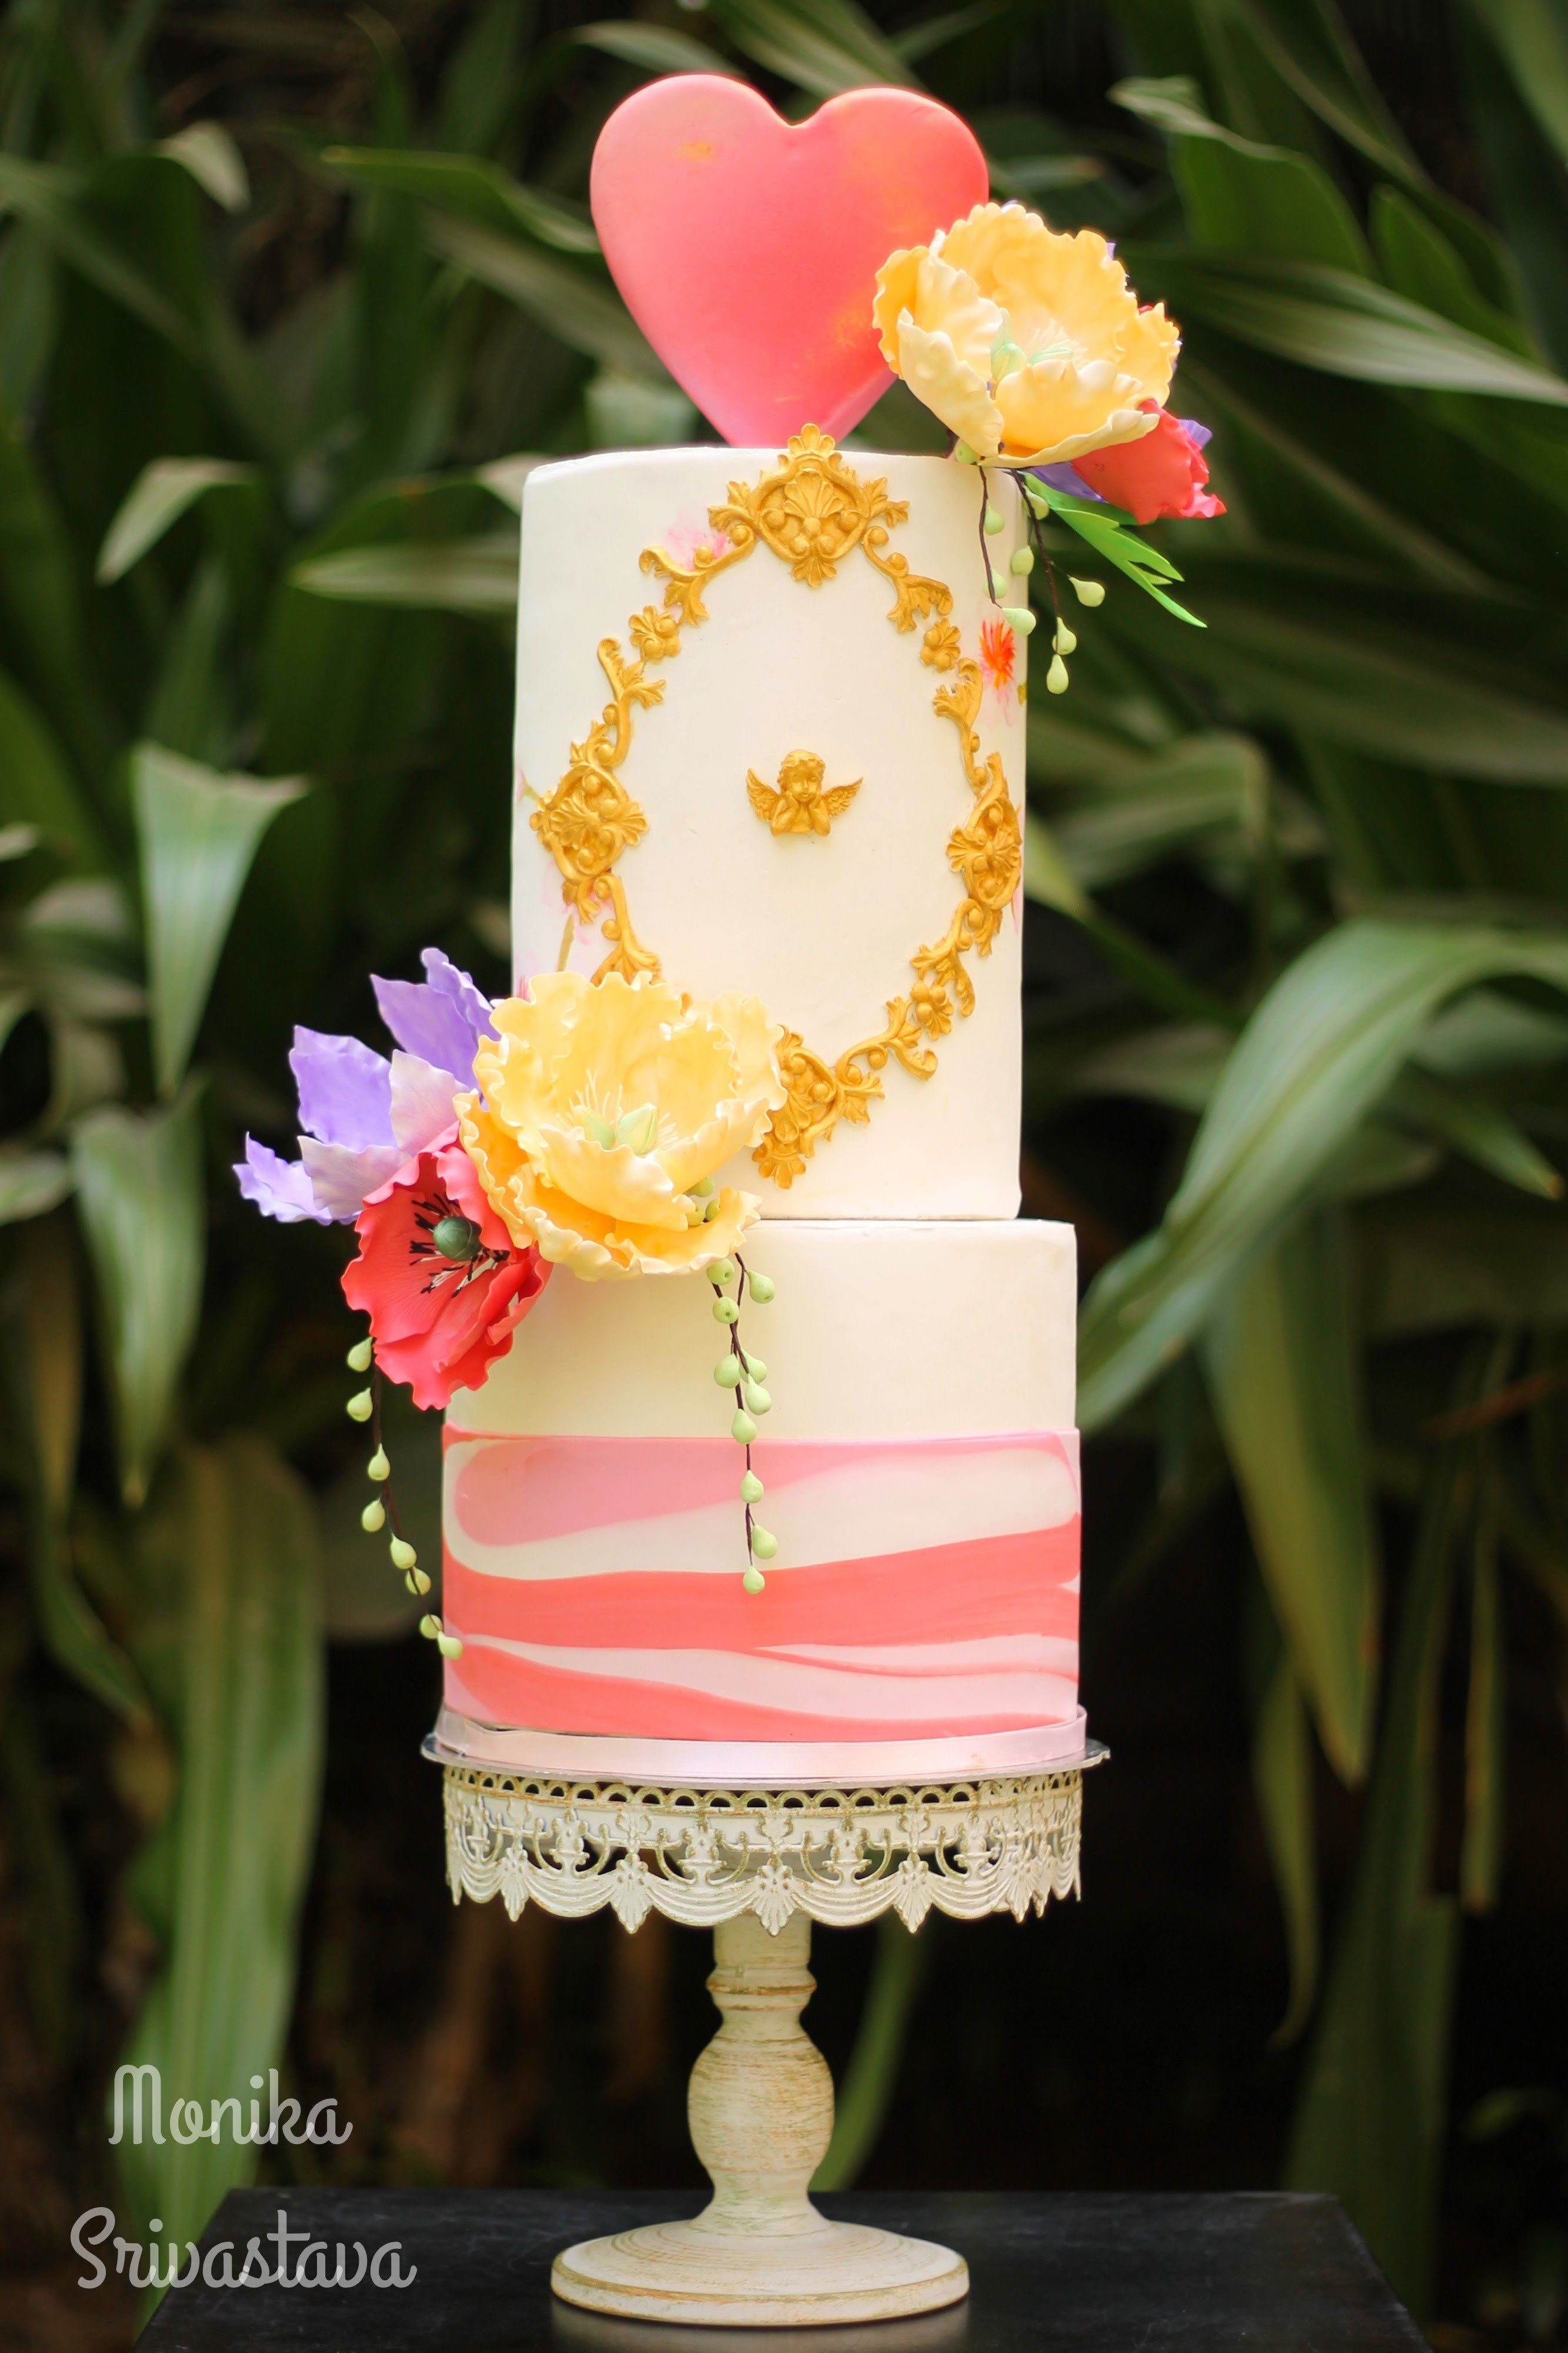 Ivory fondant wedding cake with heart details